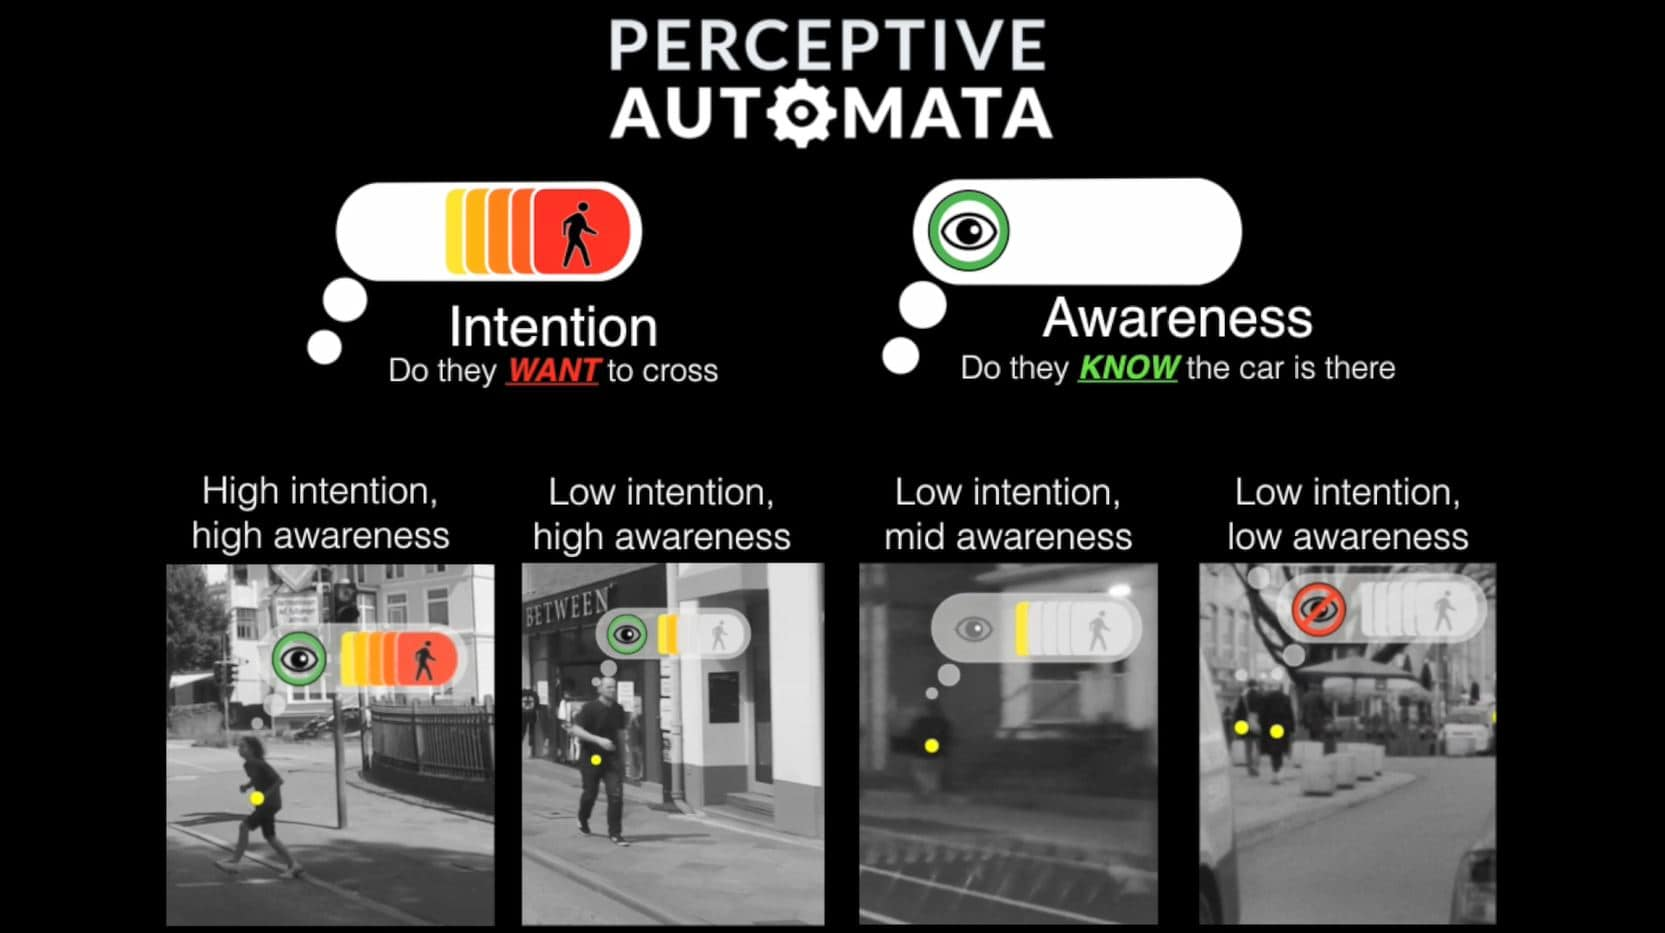 Hyundai CRADLE Invests in Perceptive Automata to Bring Human Intuition Software to Self-Driving Cars